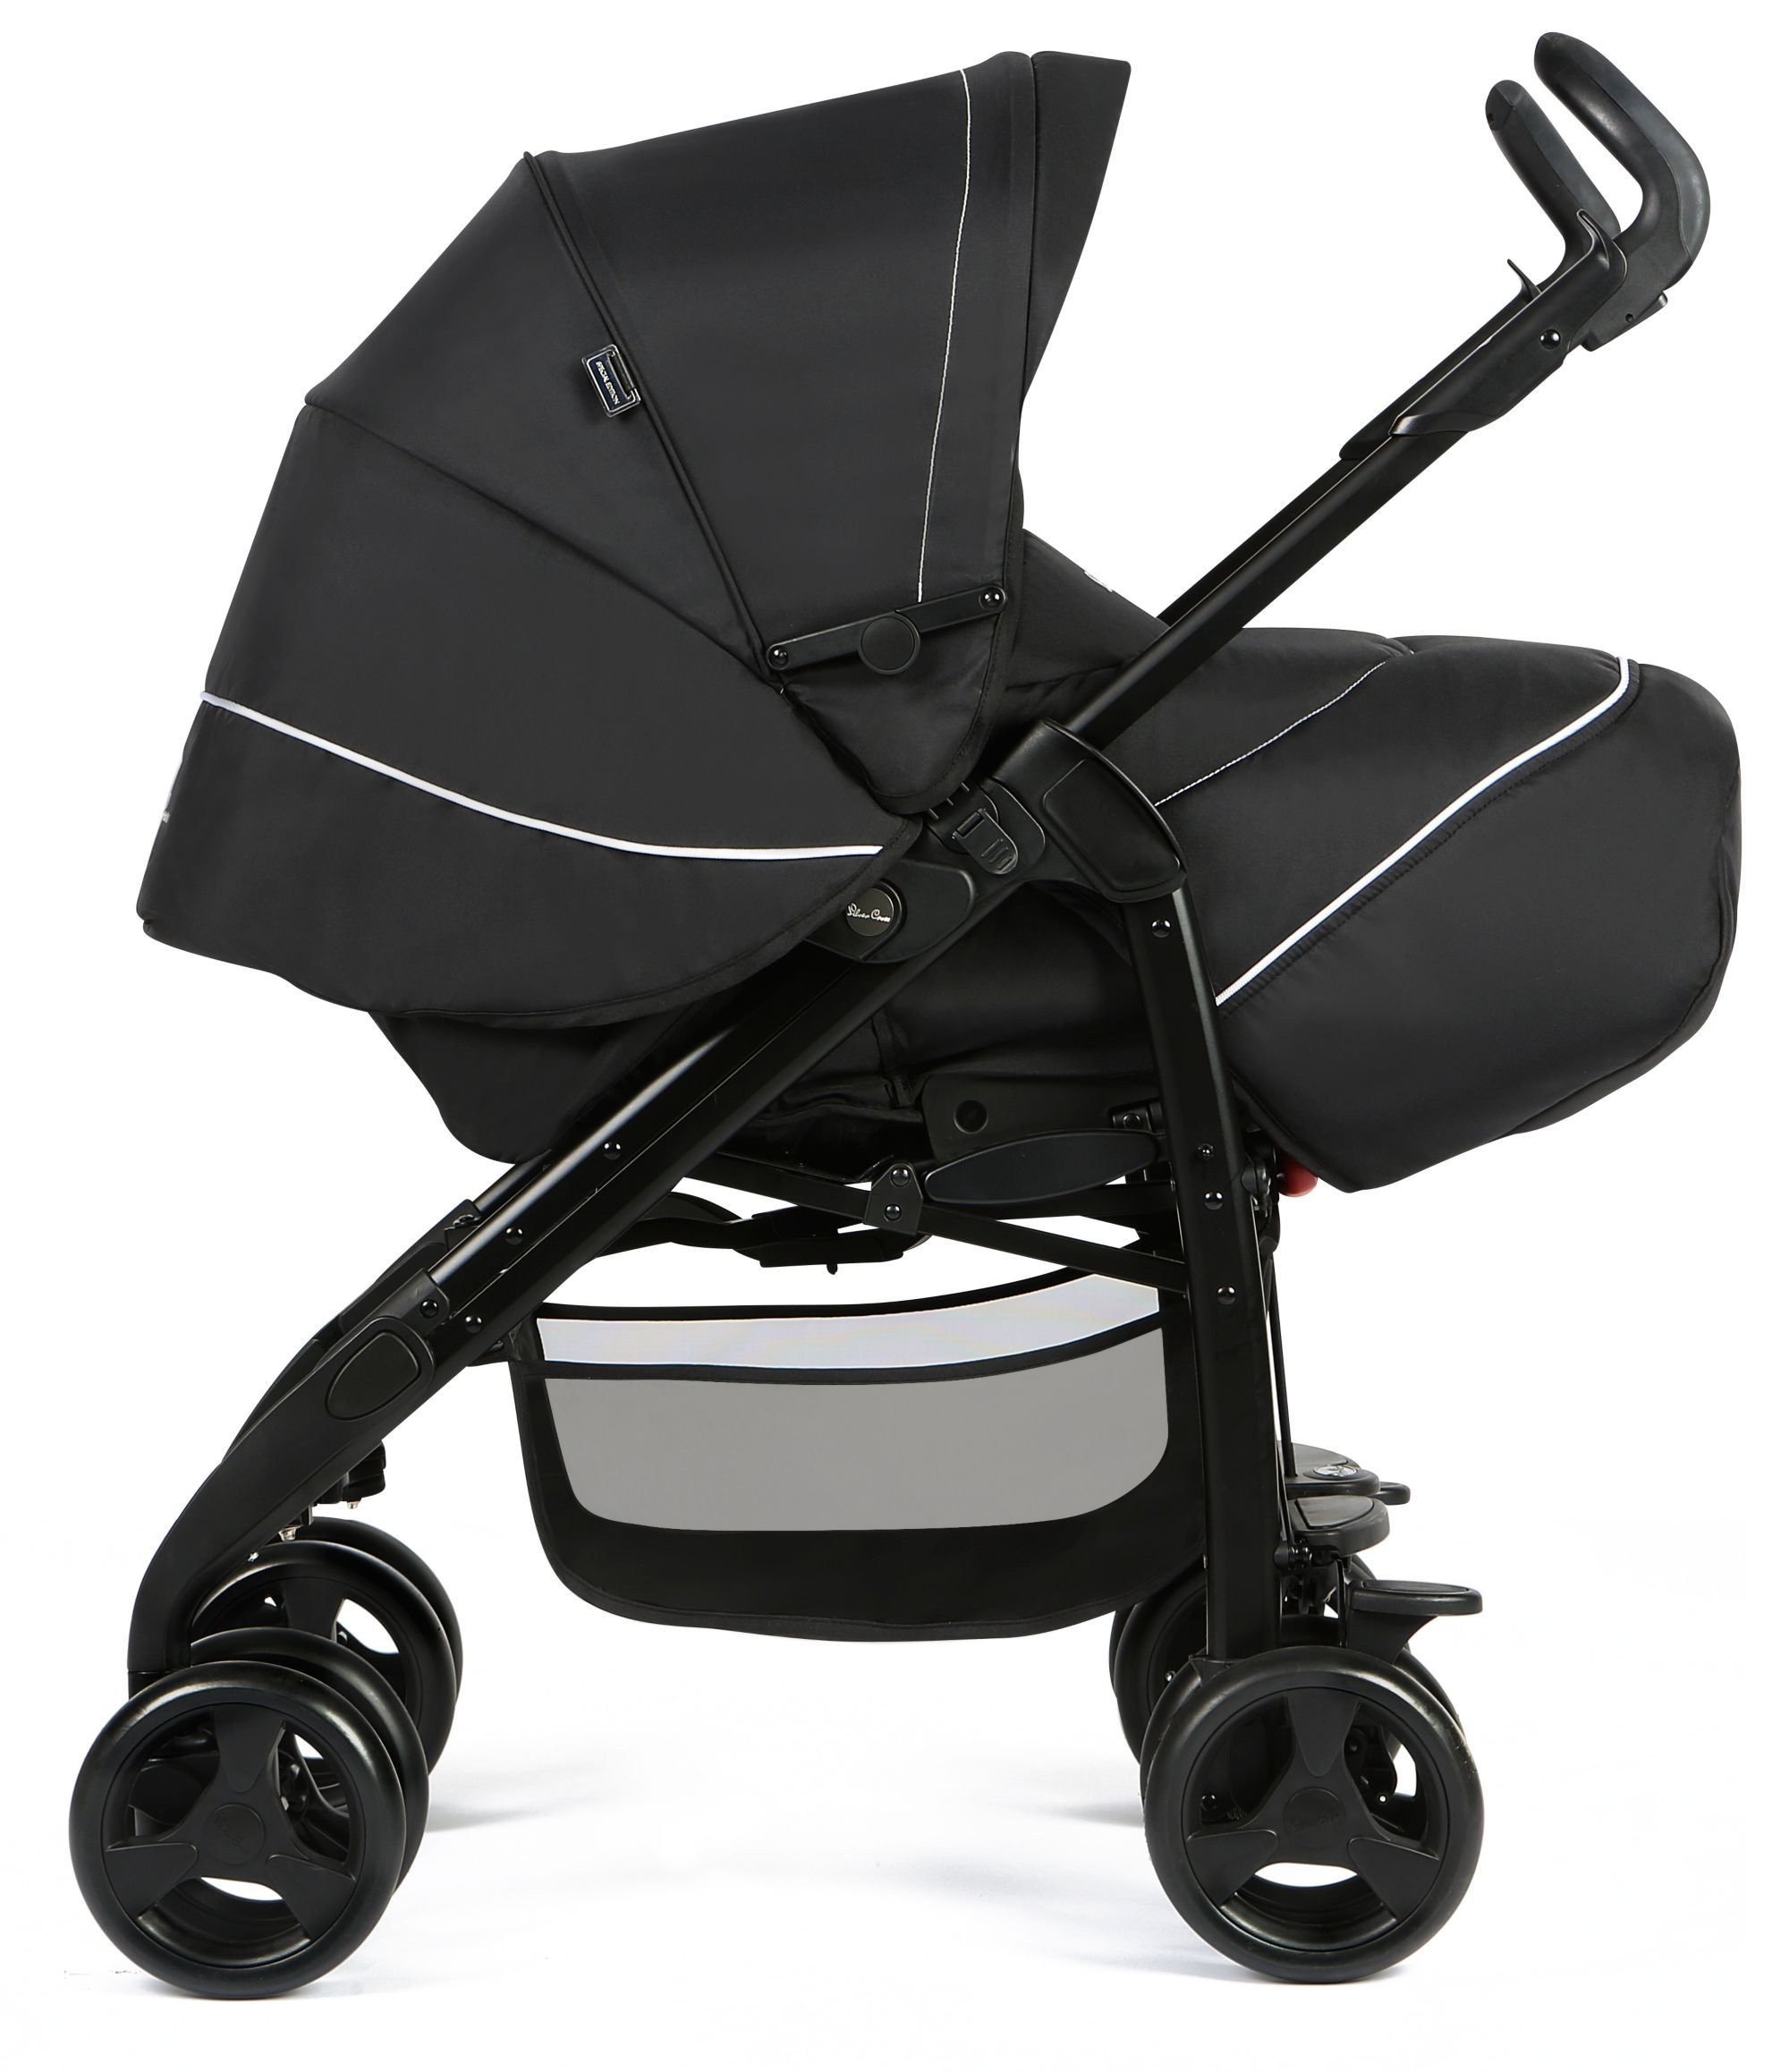 Mothercare Travel High Chair Booster Seat Quickseat Folding Silver Cross 3d Pram And Pushchair System